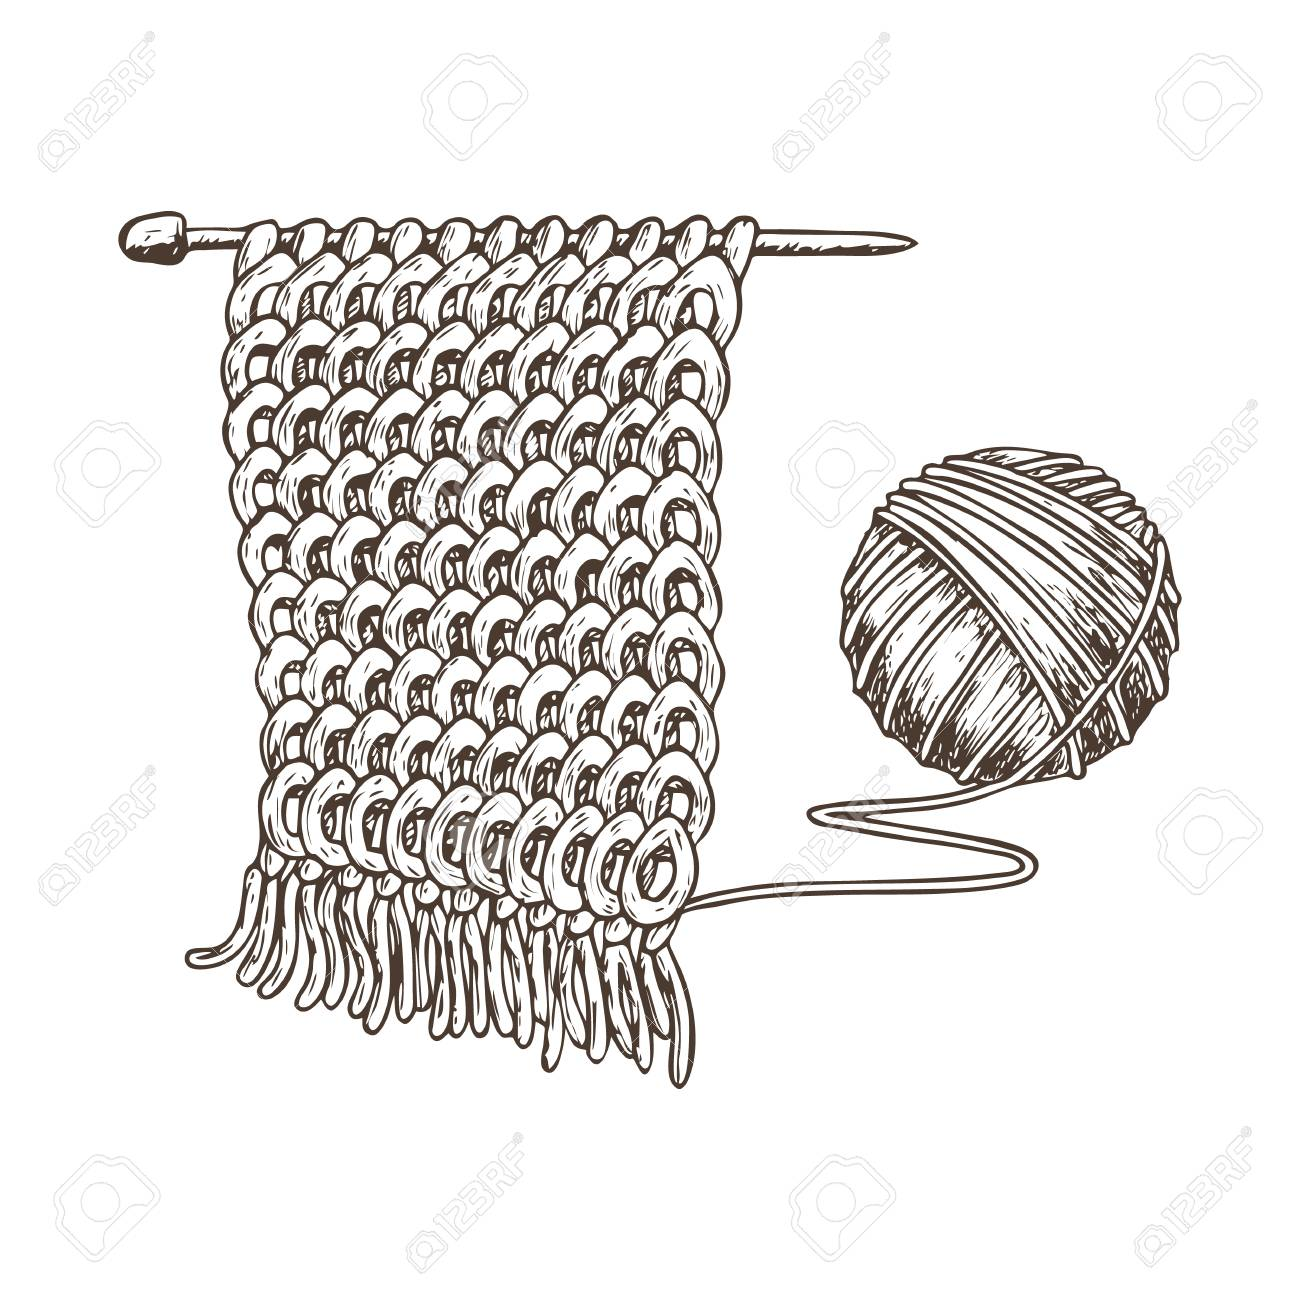 Tangle Of Yarn And Knitting Needles Sketch Illustration Of Accessories Royalty Free Cliparts Vectors And Stock Illustration Image 89978439